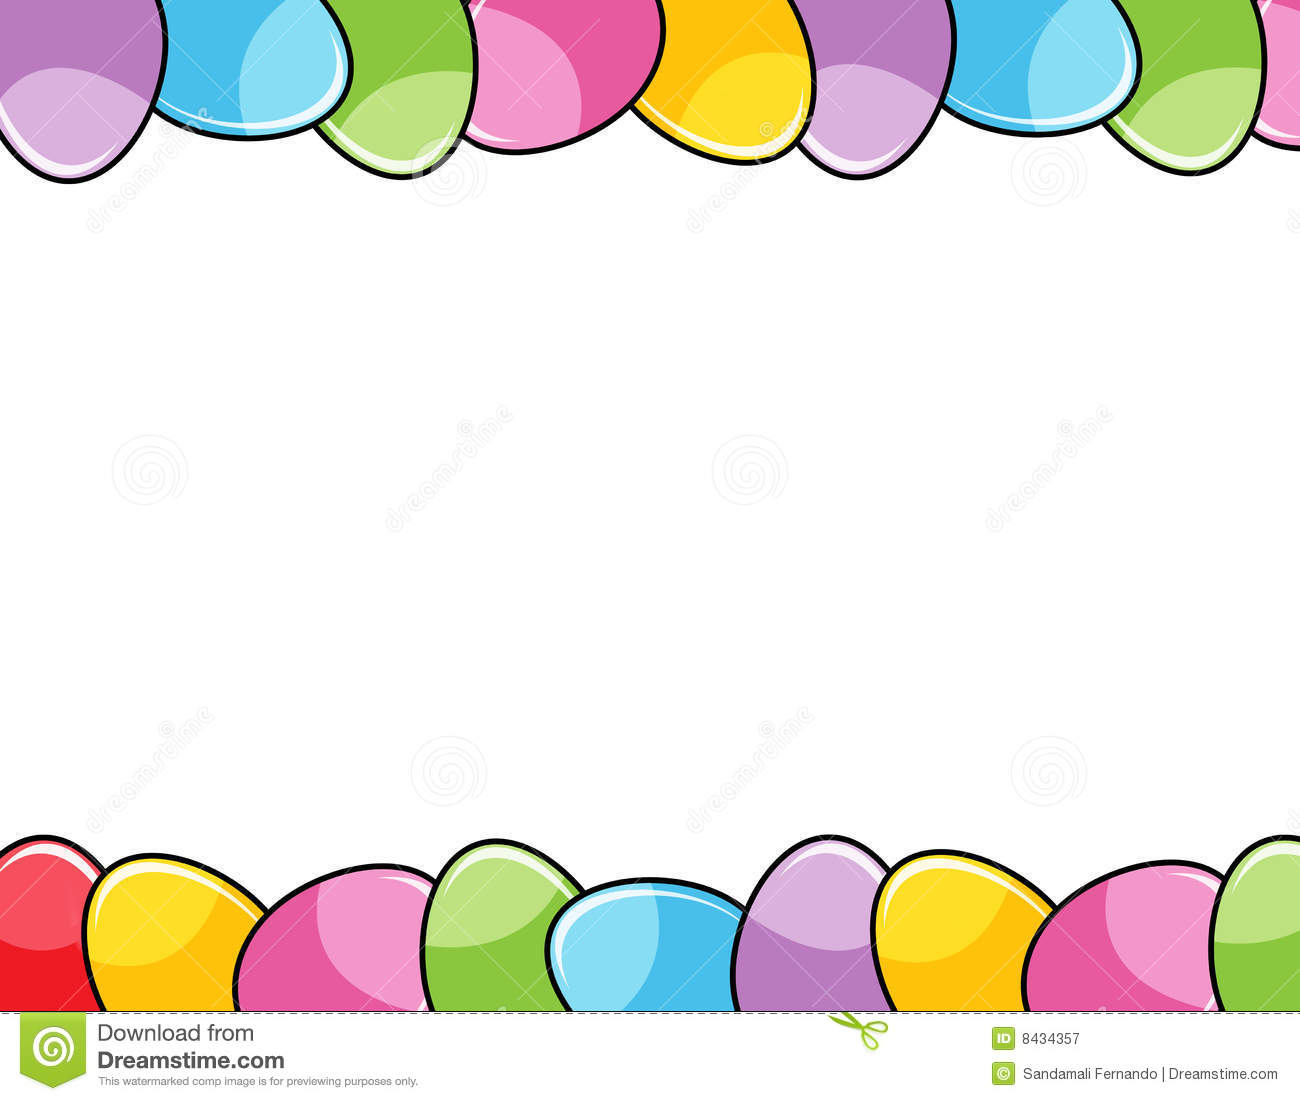 Free easter border clipart 1 » Clipart Station.